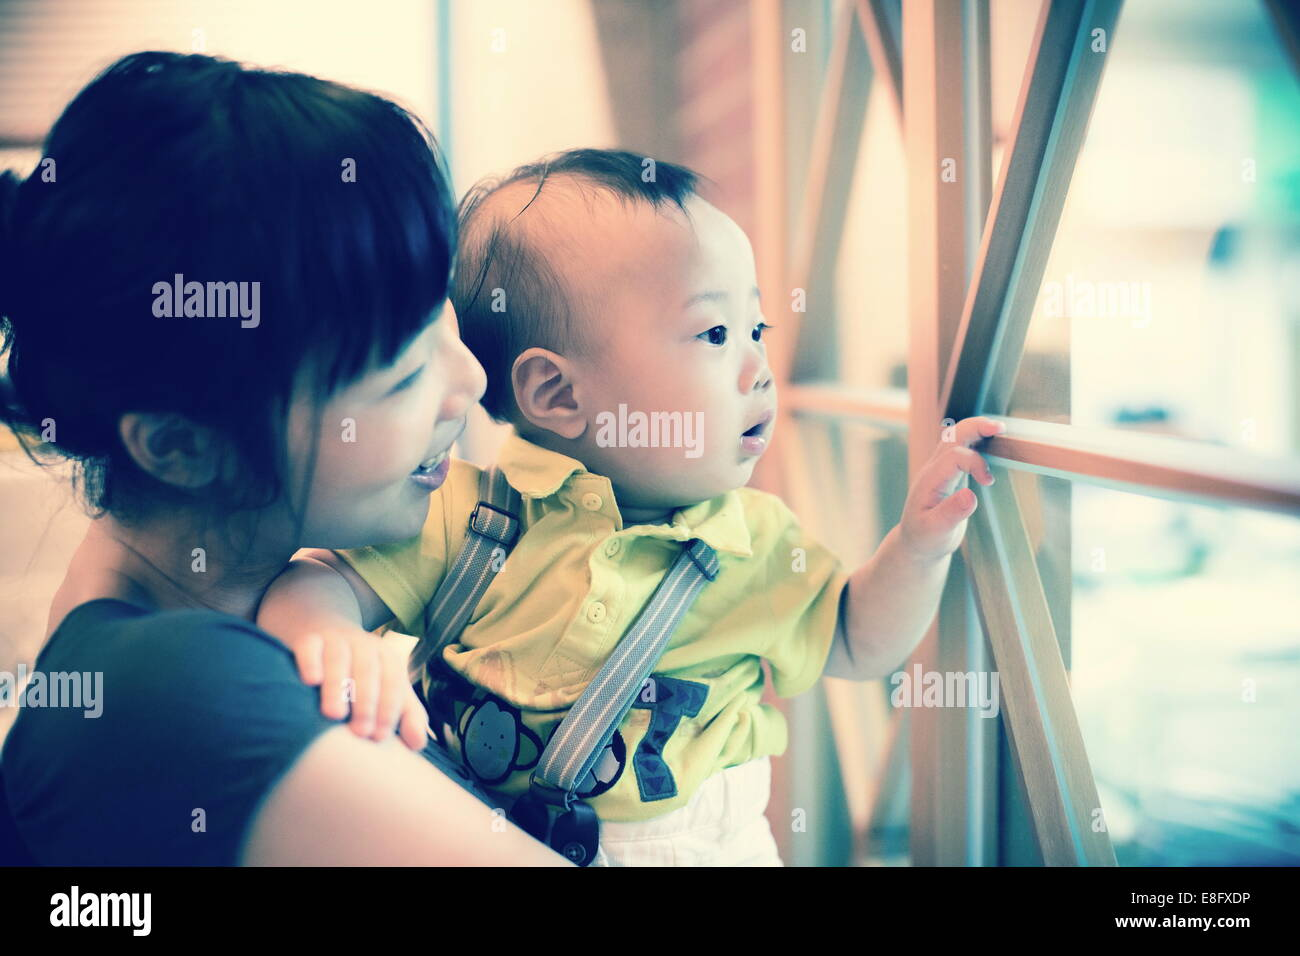 Curious child looking through window - Stock Image